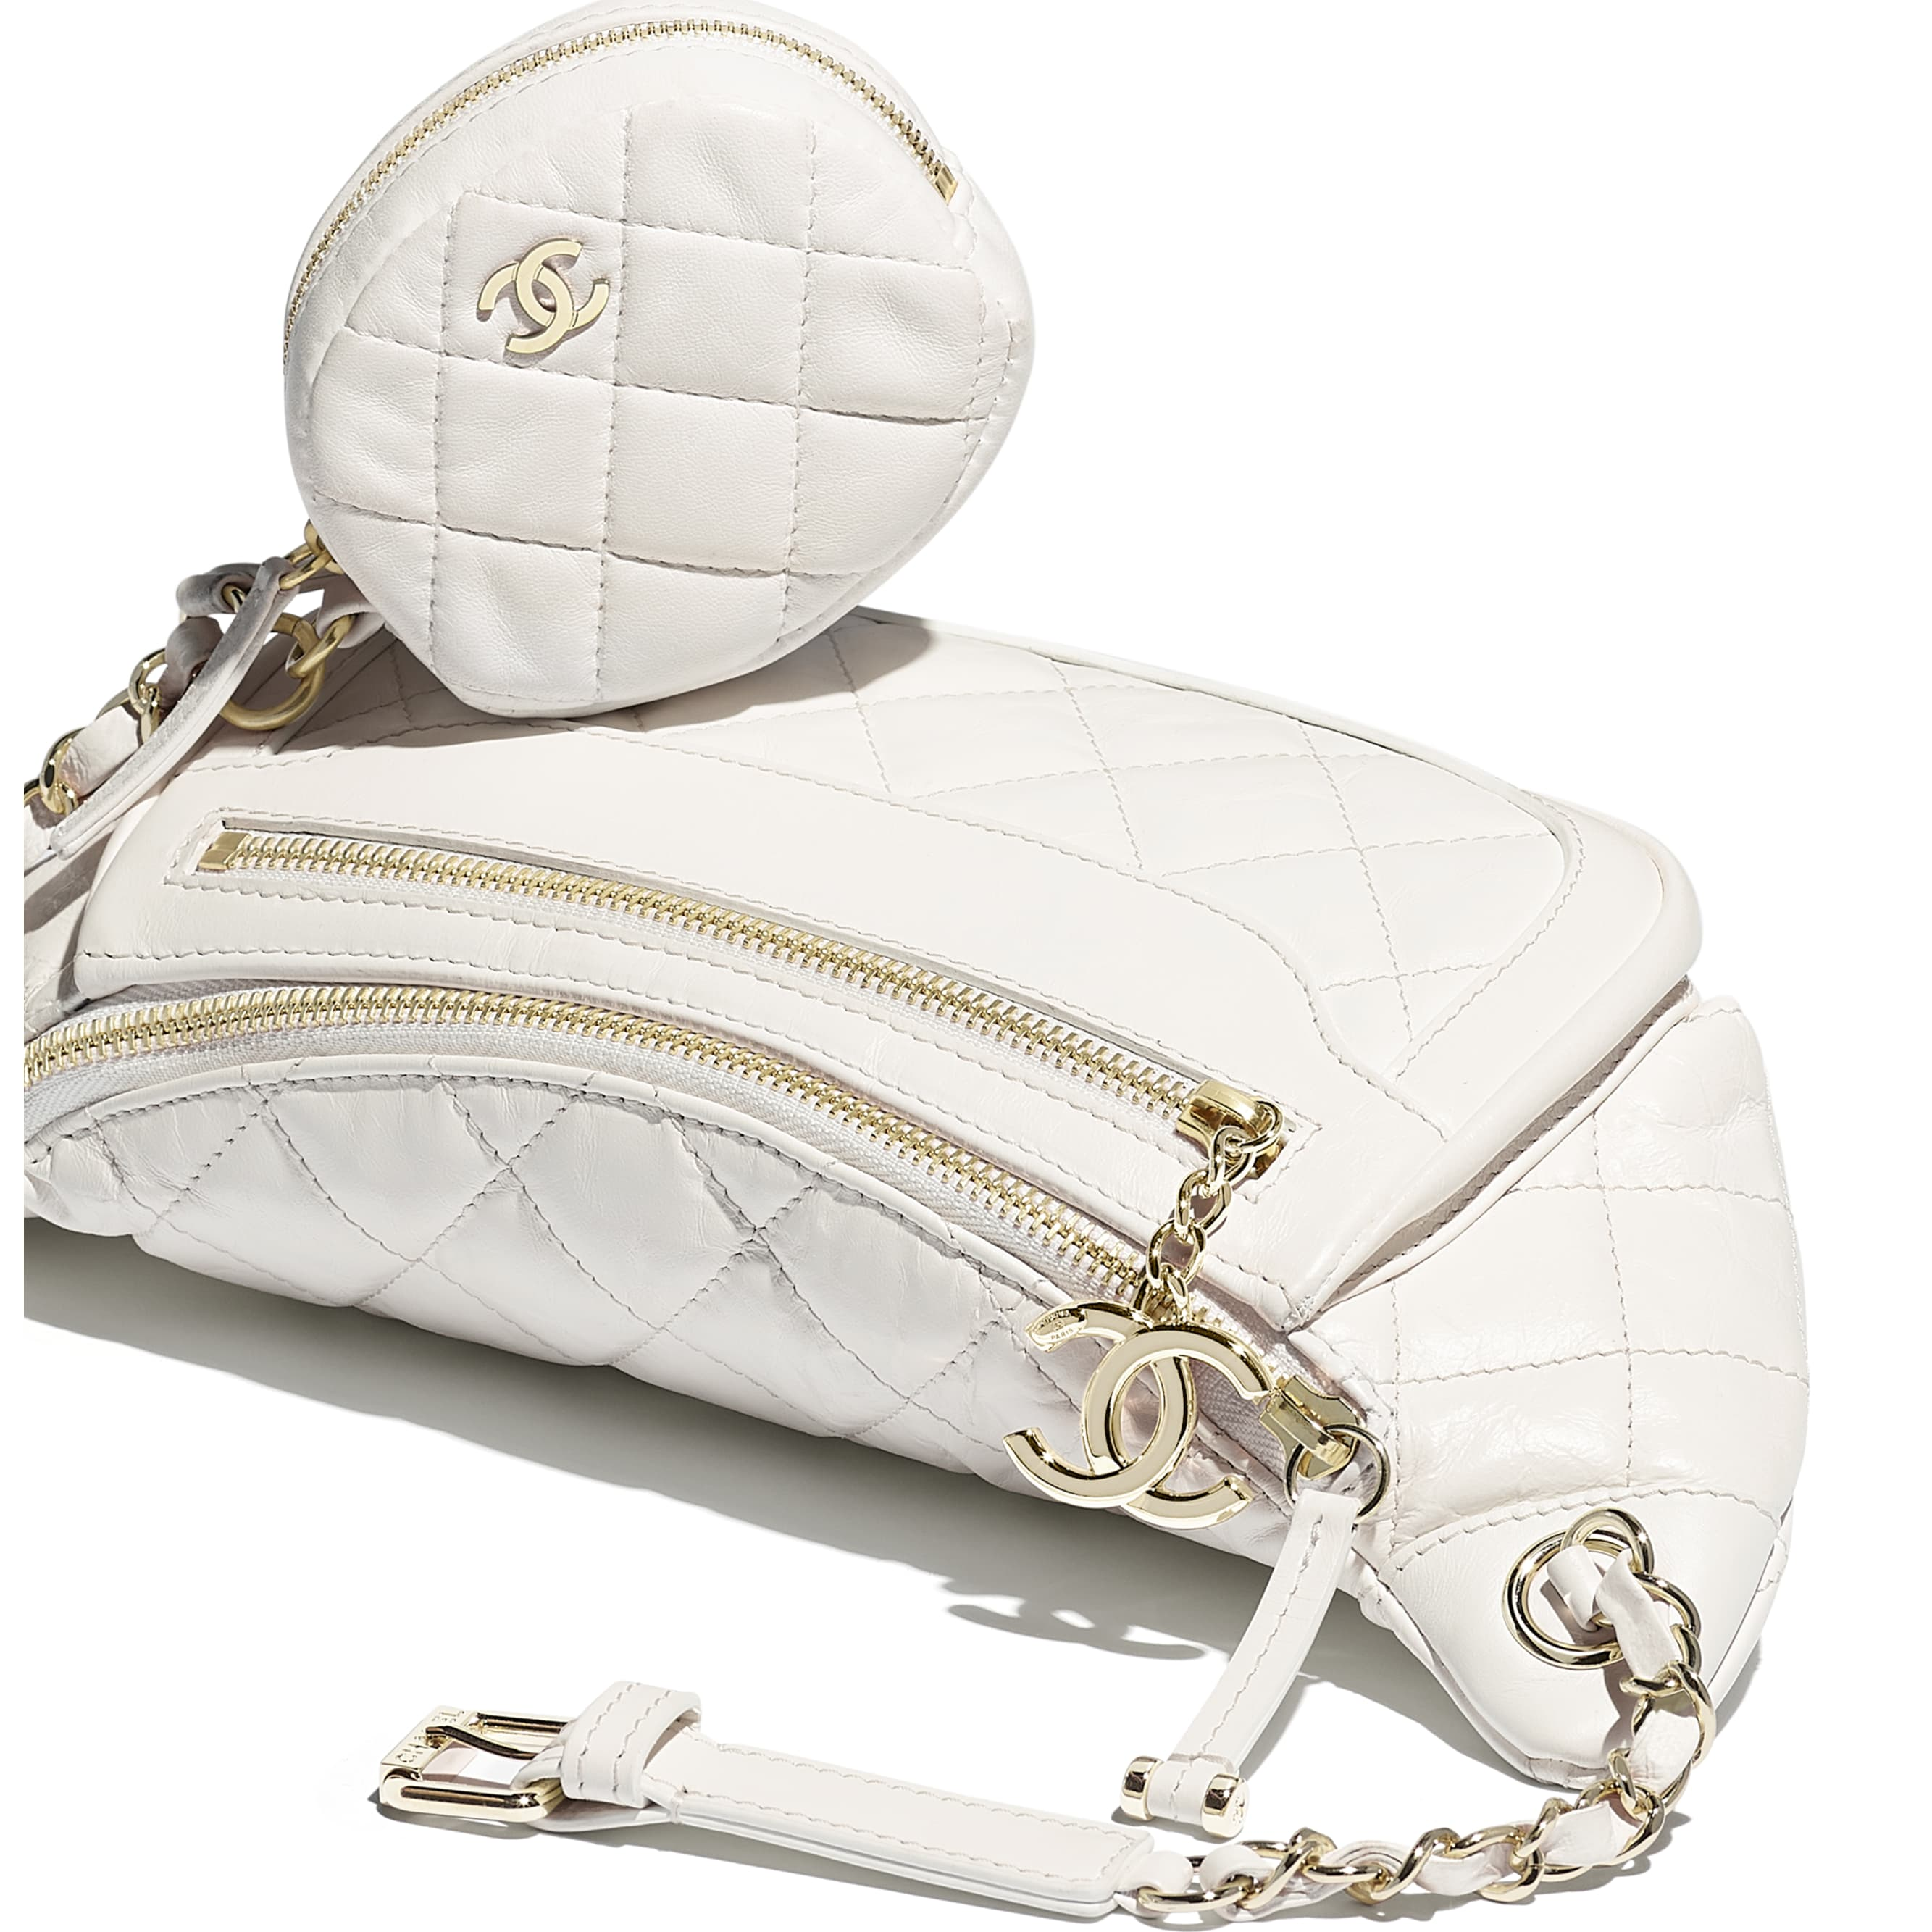 Waist Bag & Coin Purse - White - Aged Calfskin & Gold-Tone Metal - Extra view - see standard sized version